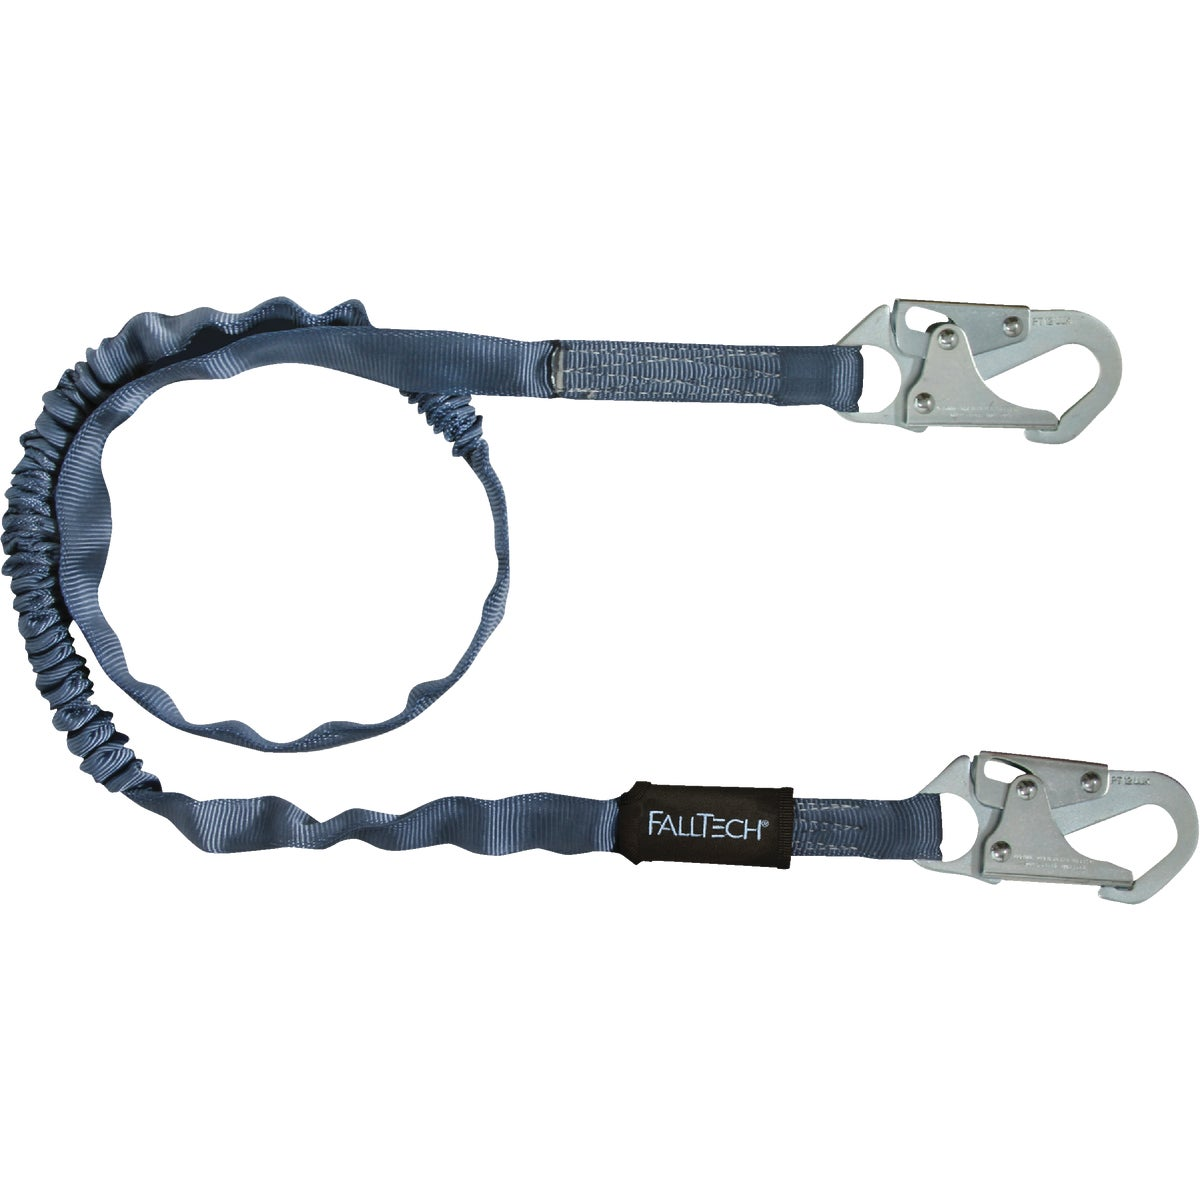 LANYARD - A8259 by Fall Tech